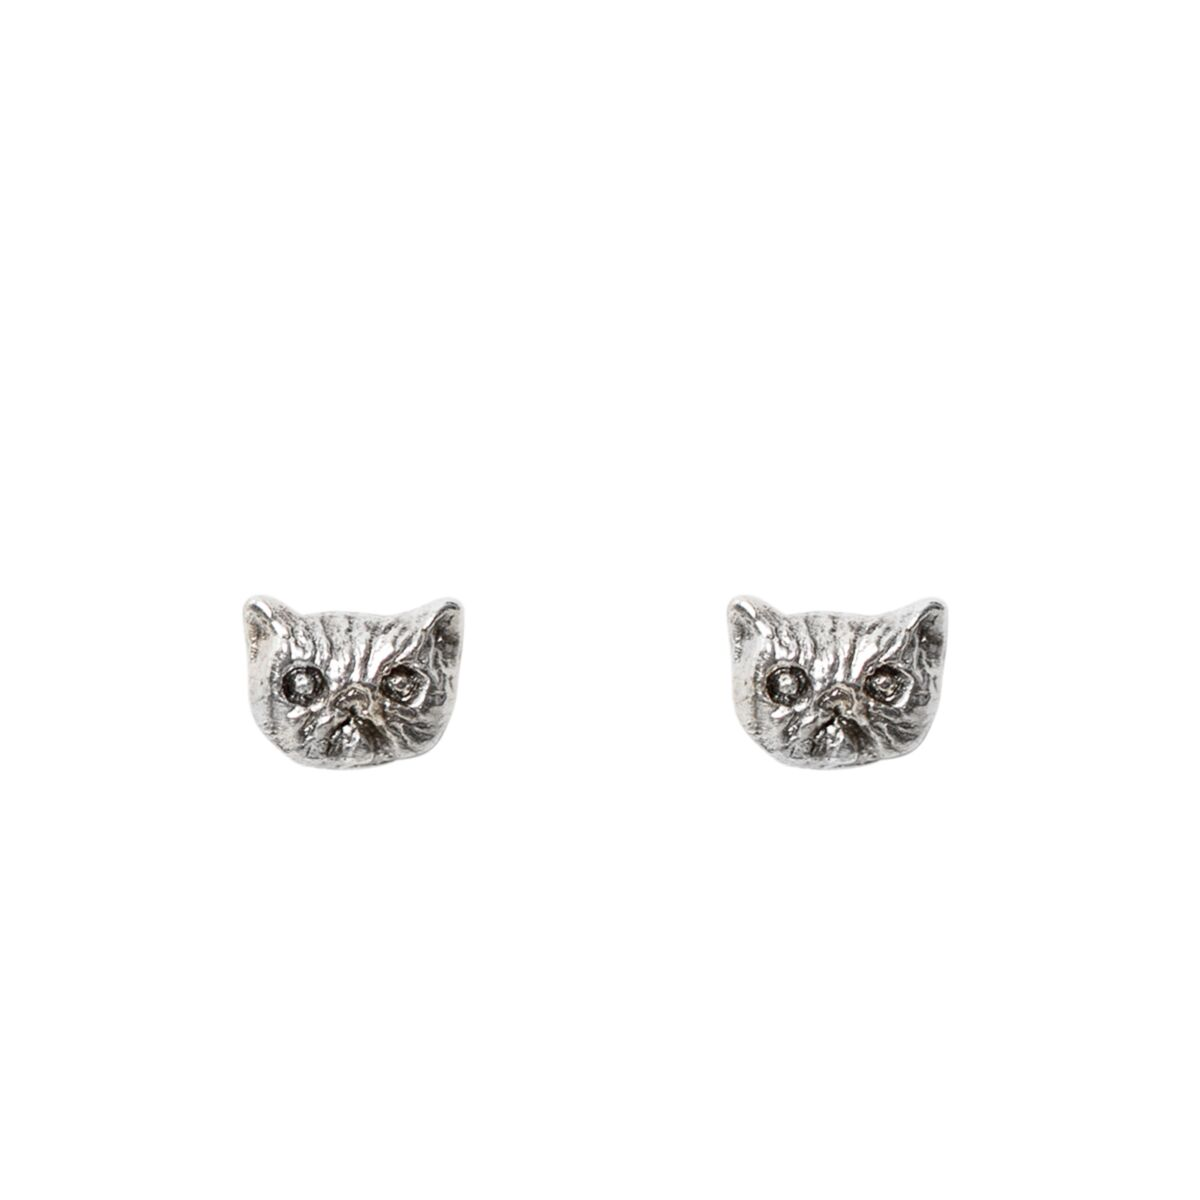 Itty Bitty Kitty Stud, Silver (single) image